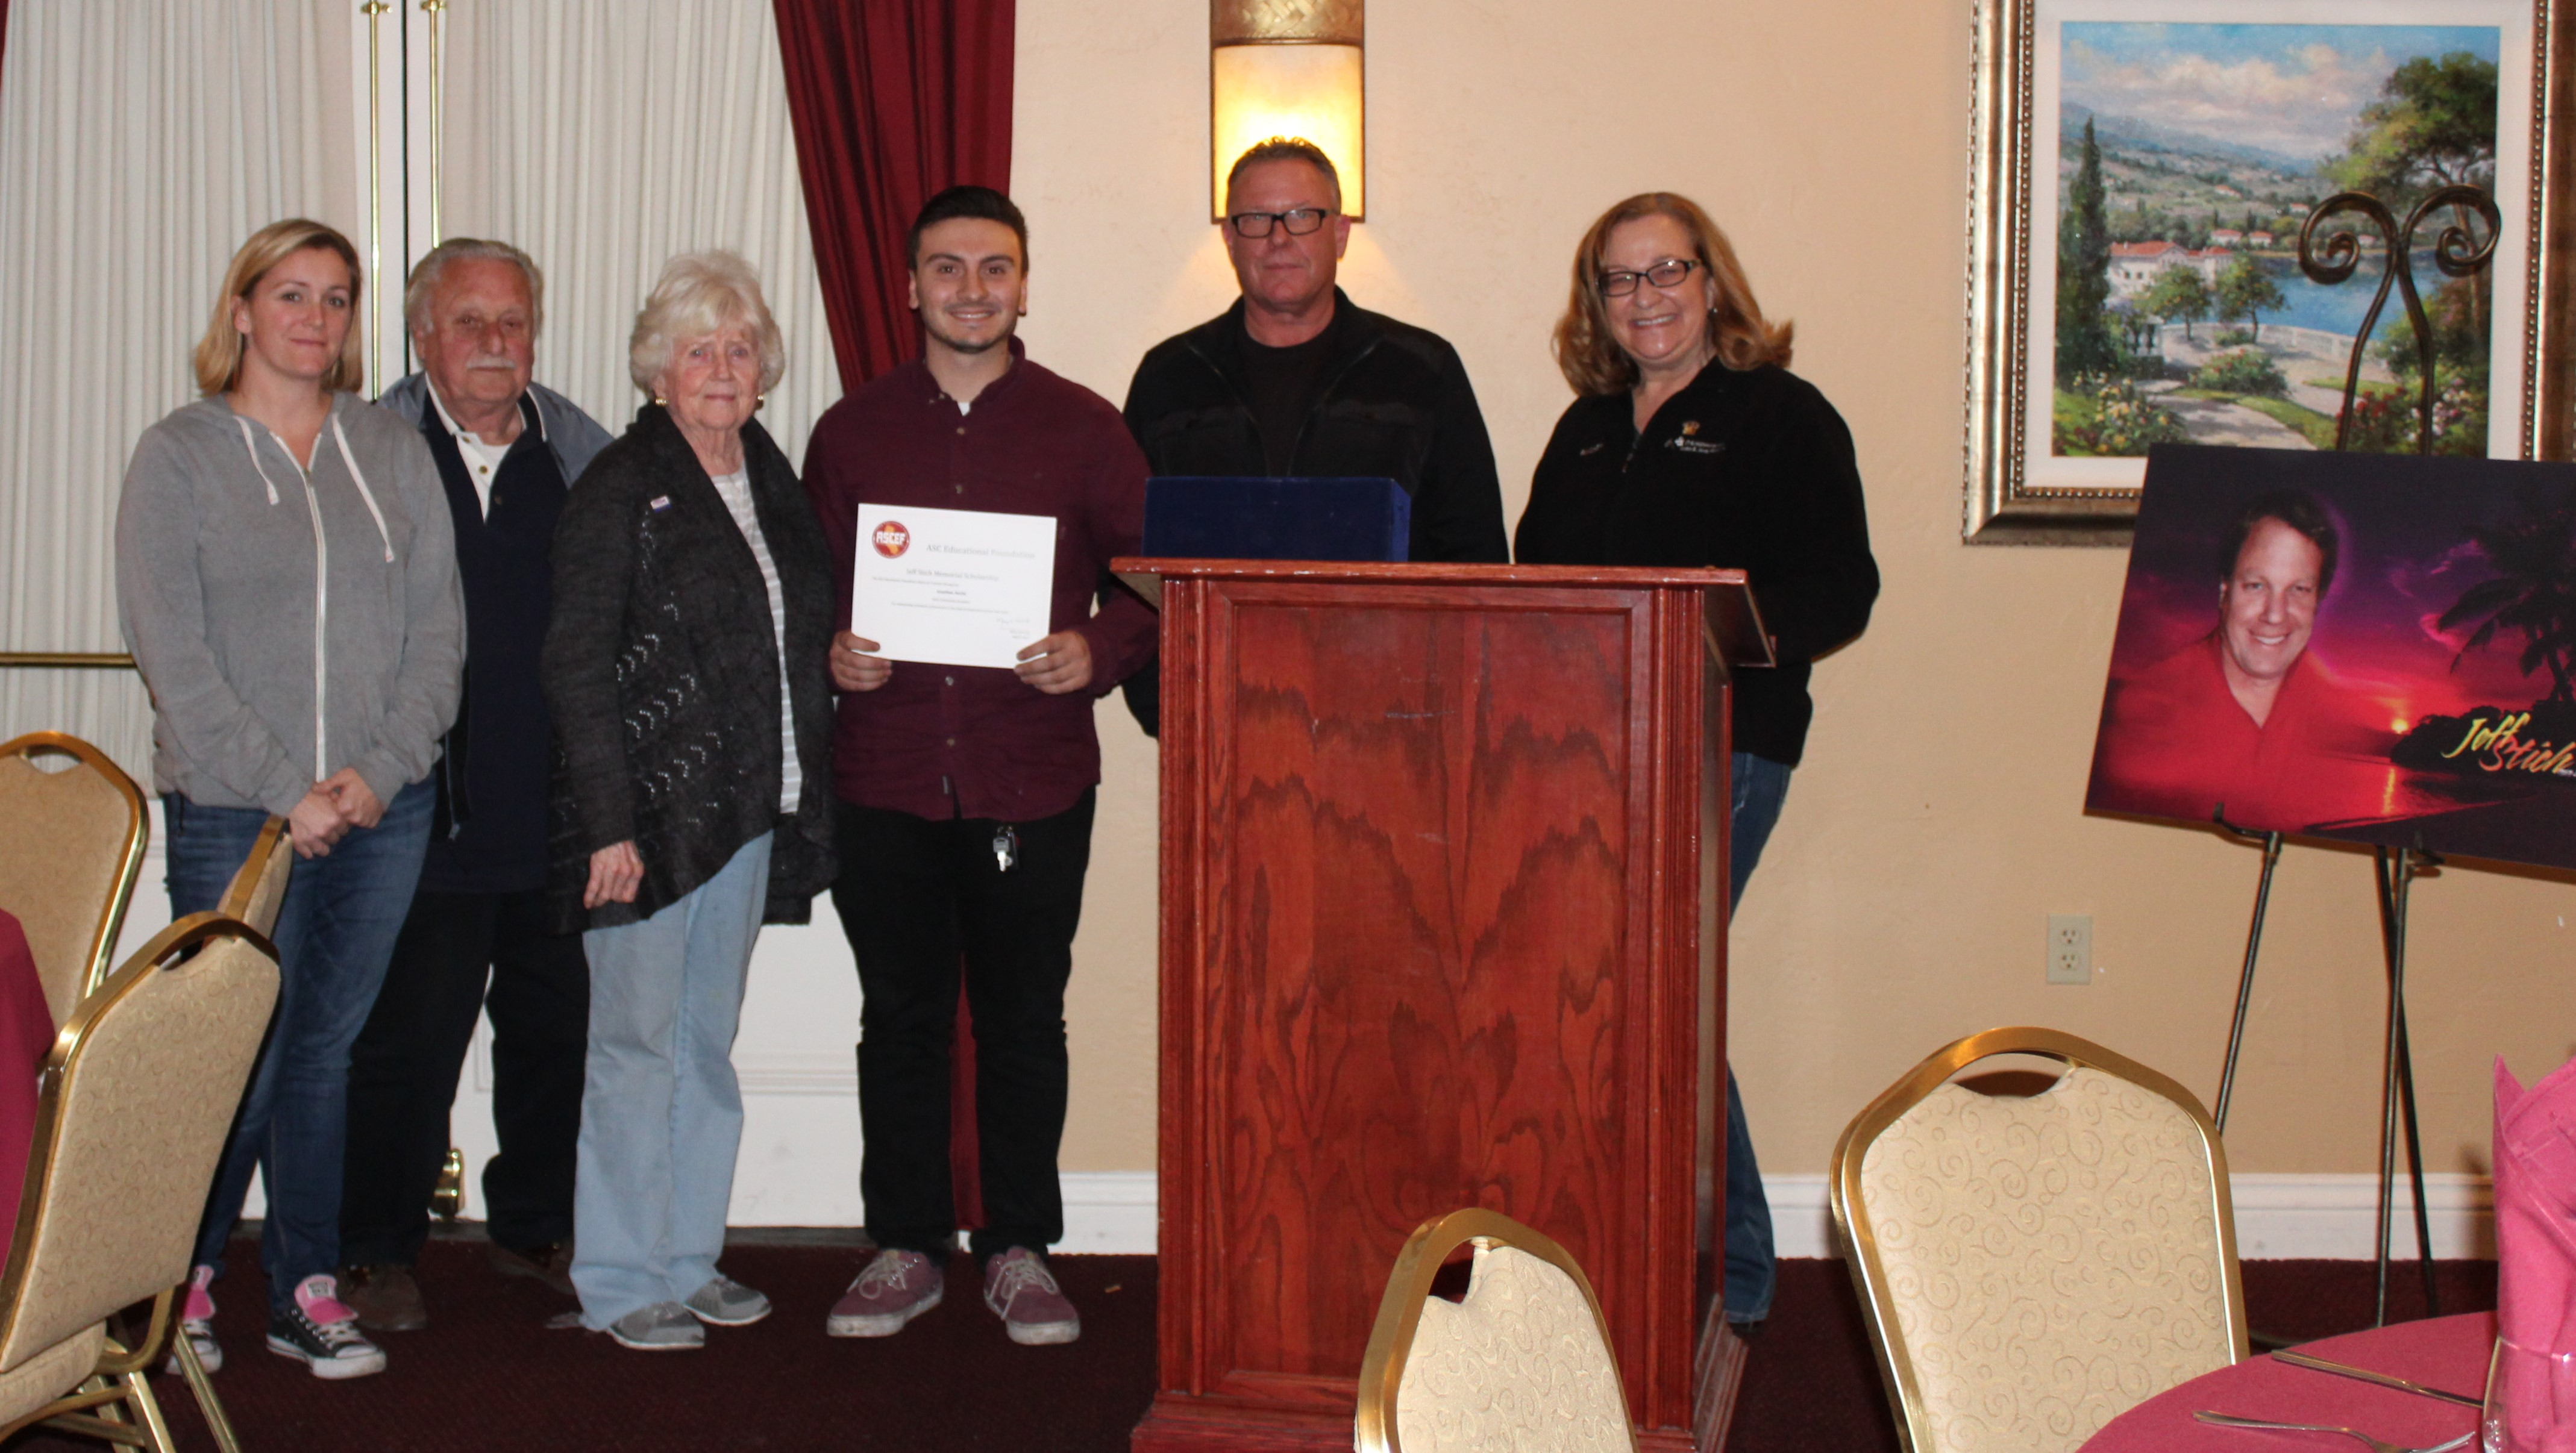 First Annual Jeff Stich Memorial Scholarship